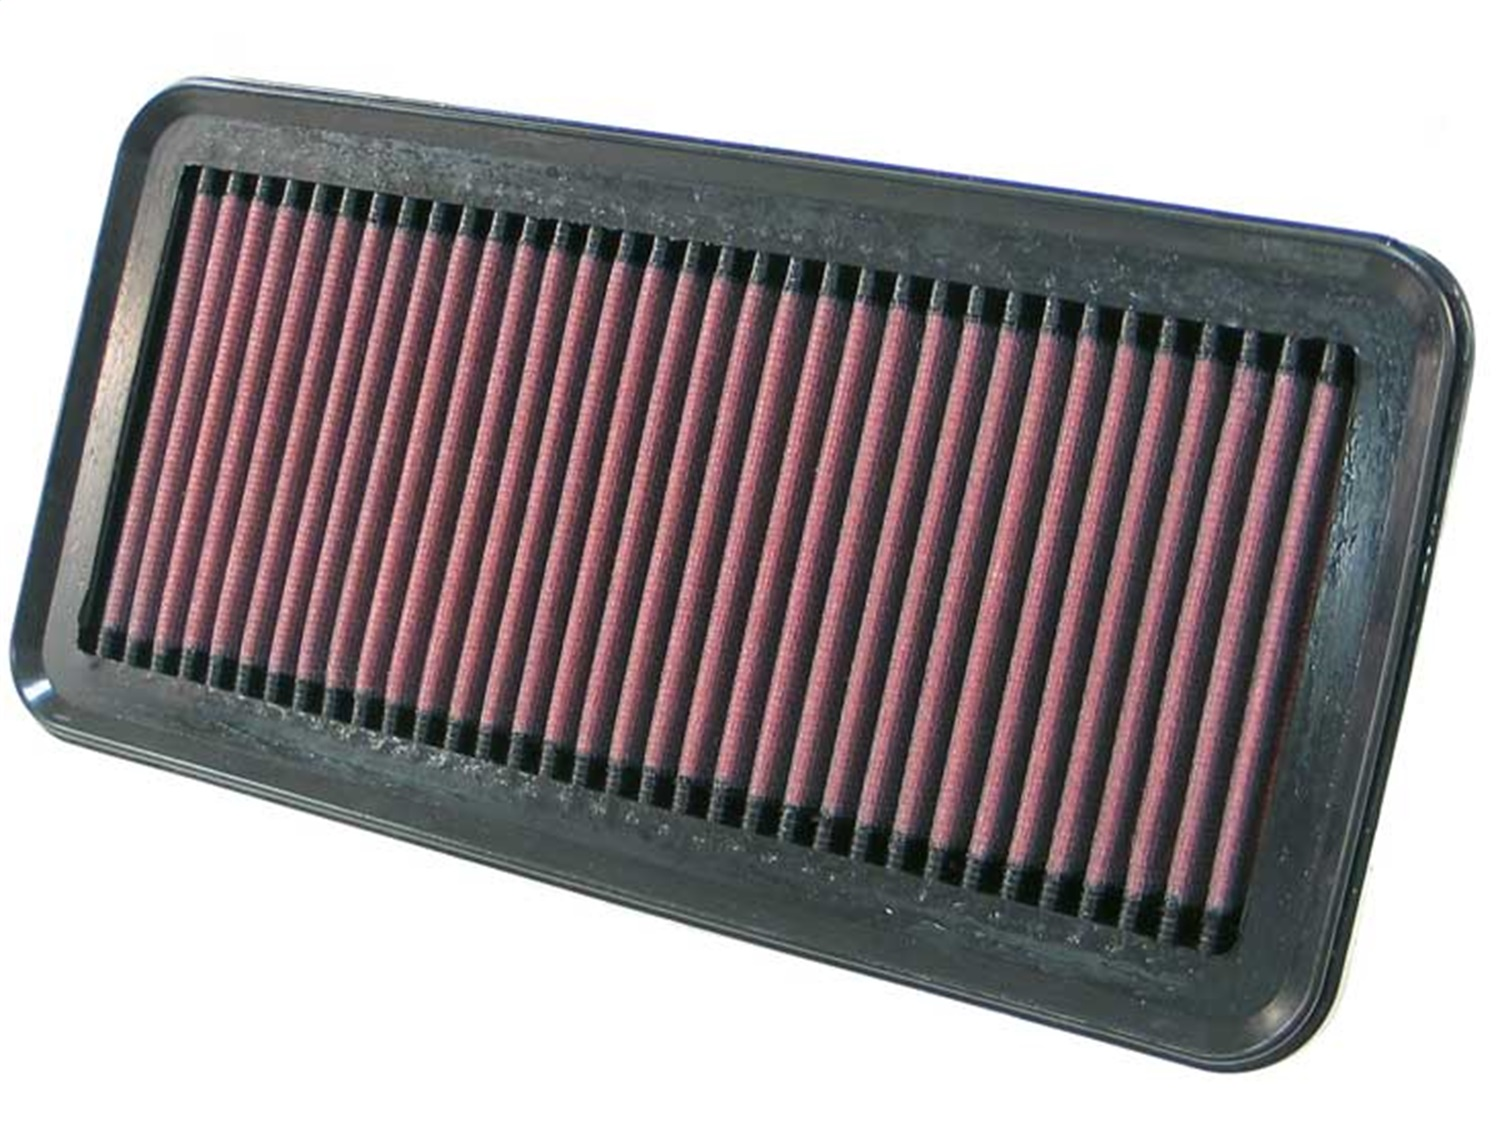 K&N Filters 33-2354 Air Filter Fits 06-11 Accent Rio Rio5 33-2354